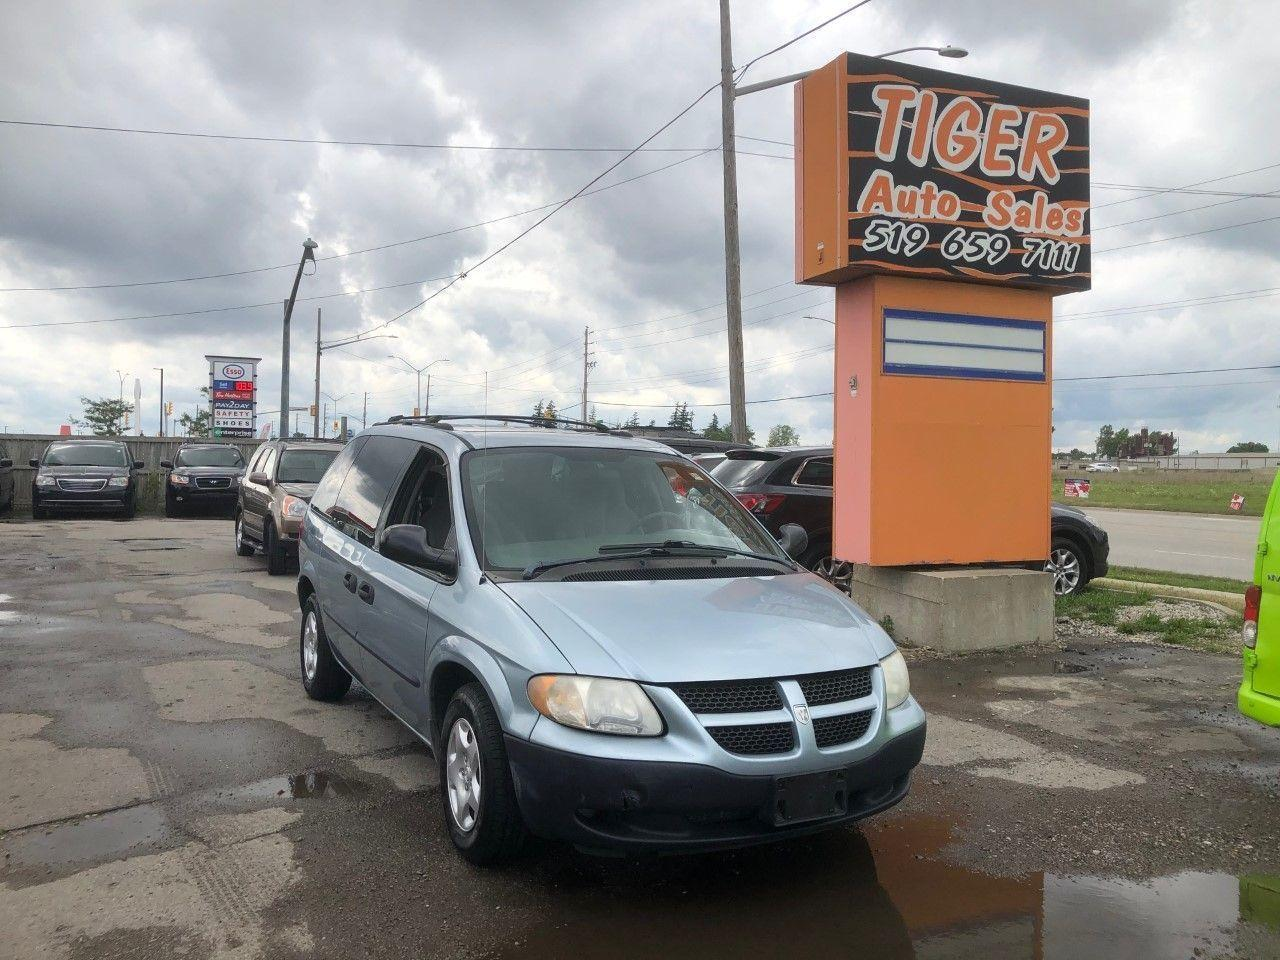 used 2003 dodge caravan se very clean only 155kms as is special for sale in london, ontario carpages.ca